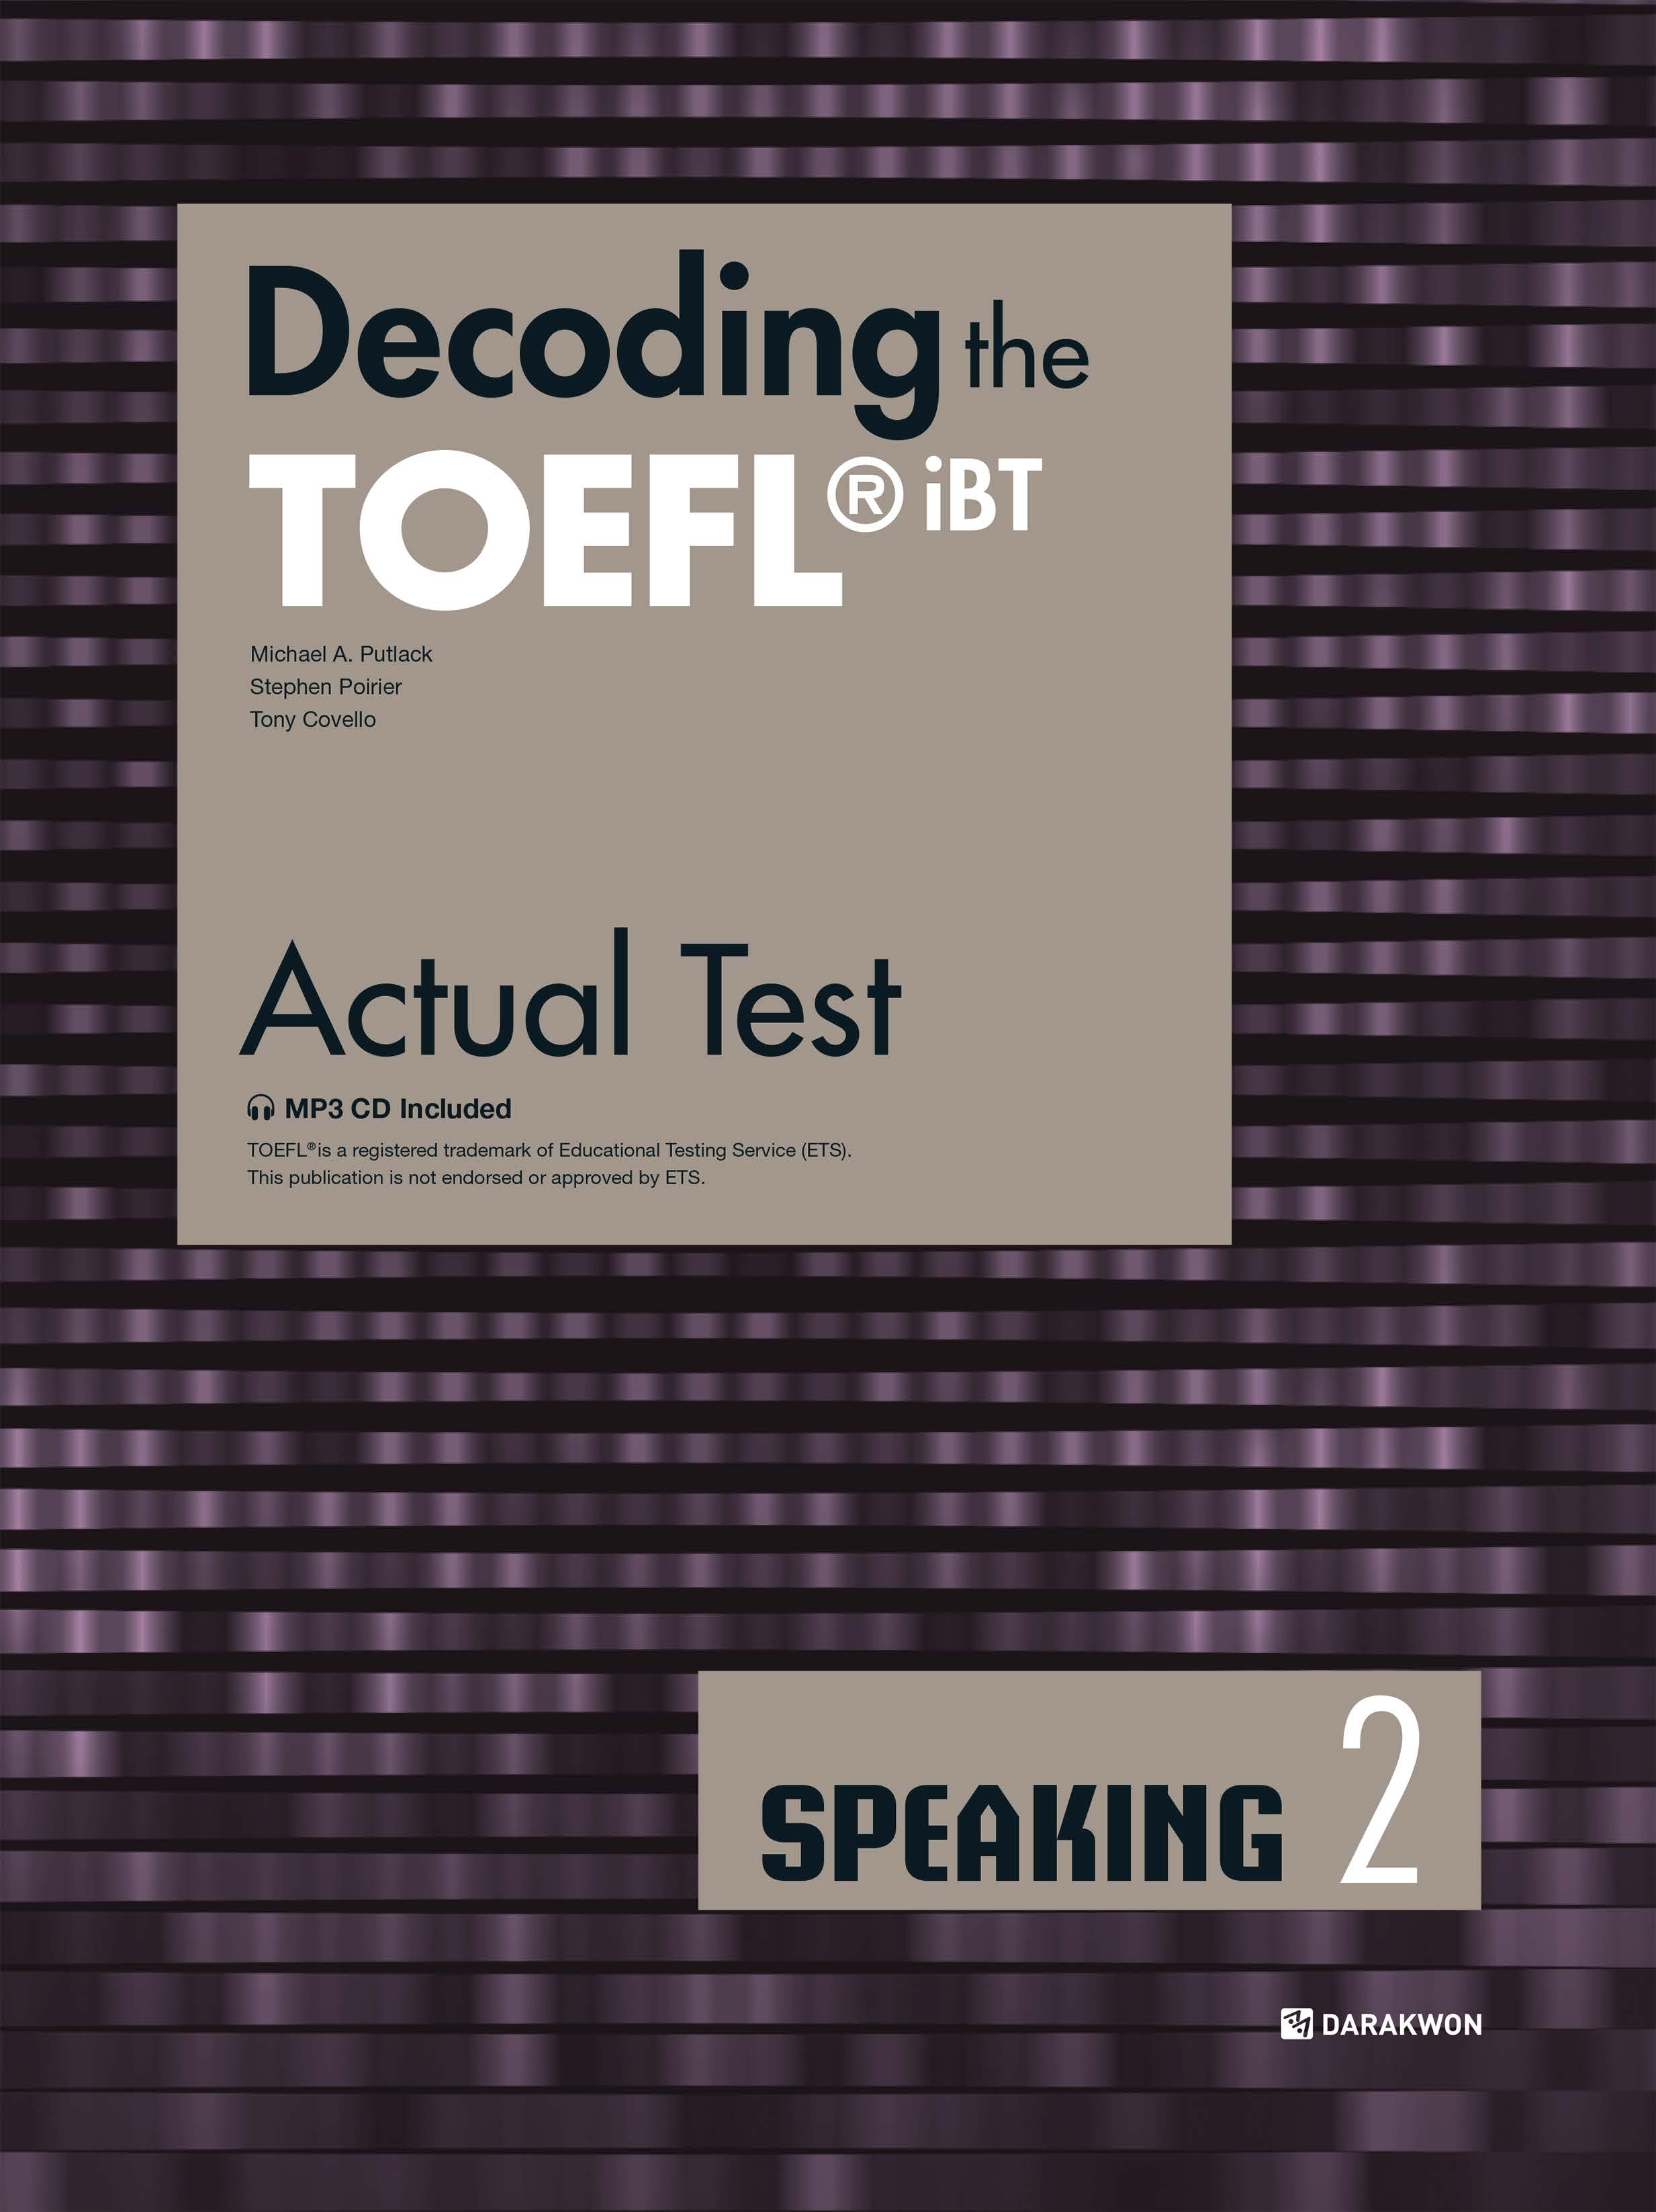 [Decoding the TOEFL iBT Actual Test] Decoding the TOEFL iBT Actual Test SPEAKING 2